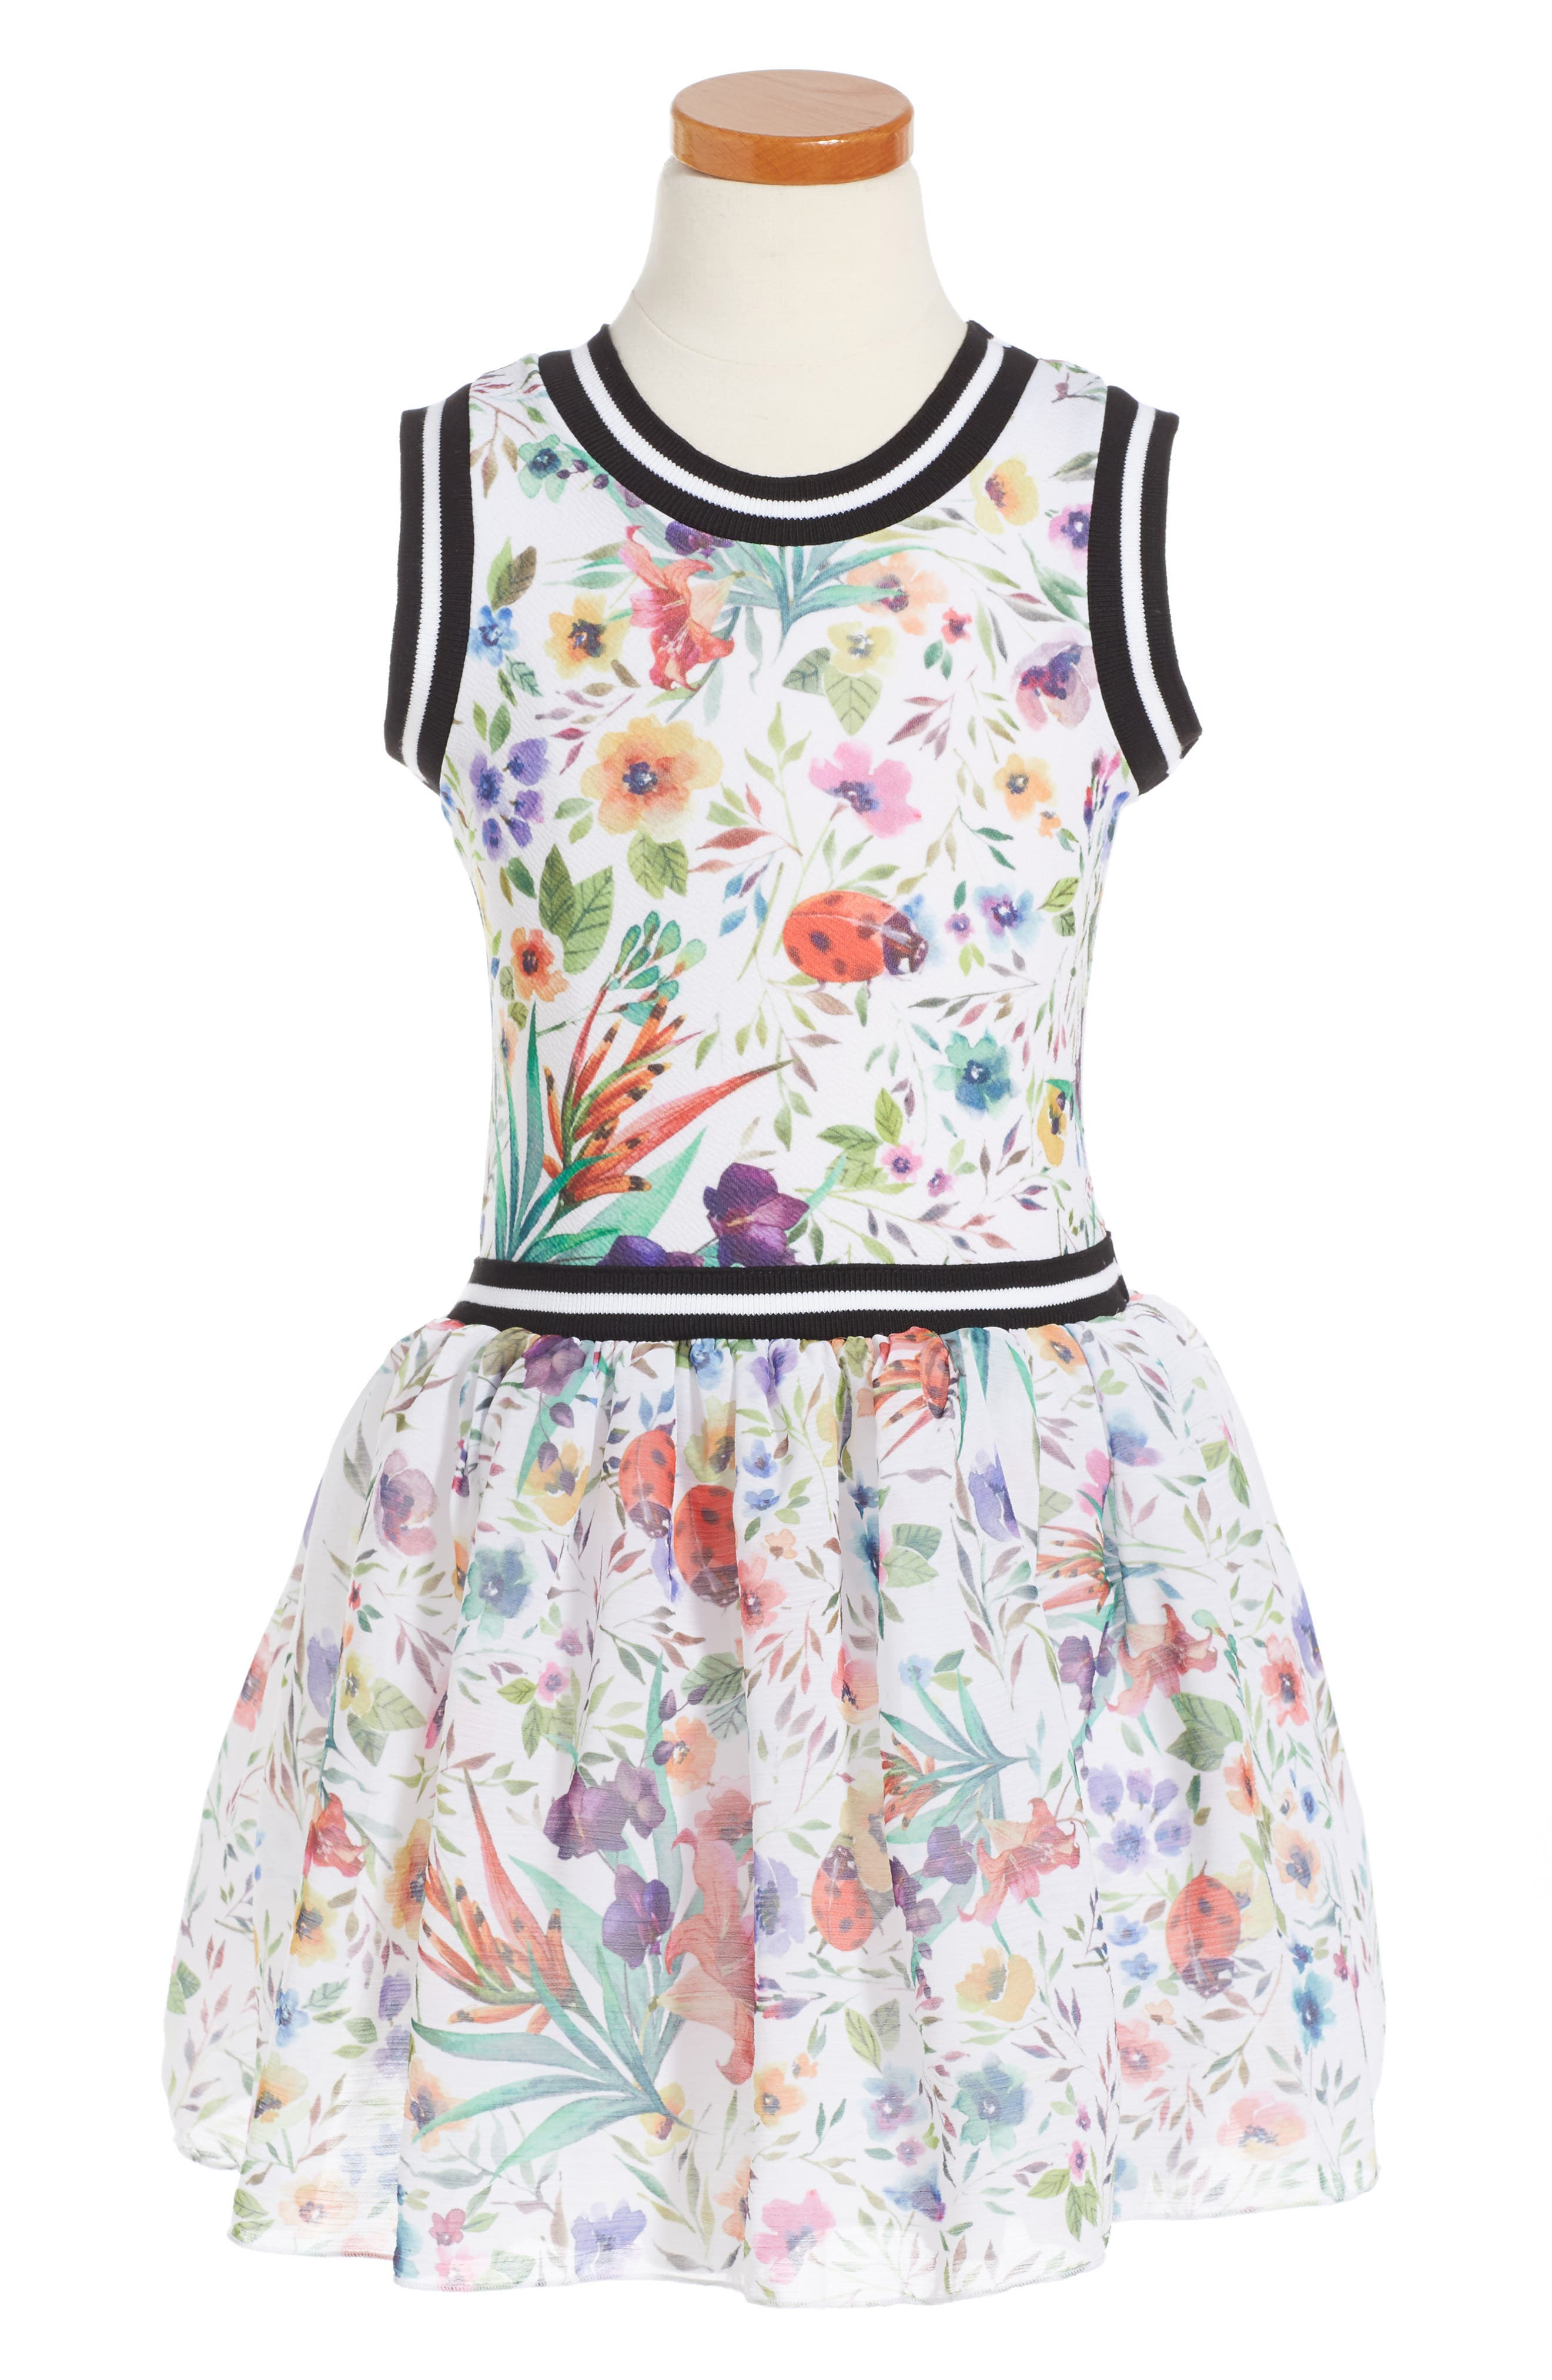 Twirls & Twigs Floral Print Sleeveless Dress (Toddler Girls, Little Girls & Big Girls)